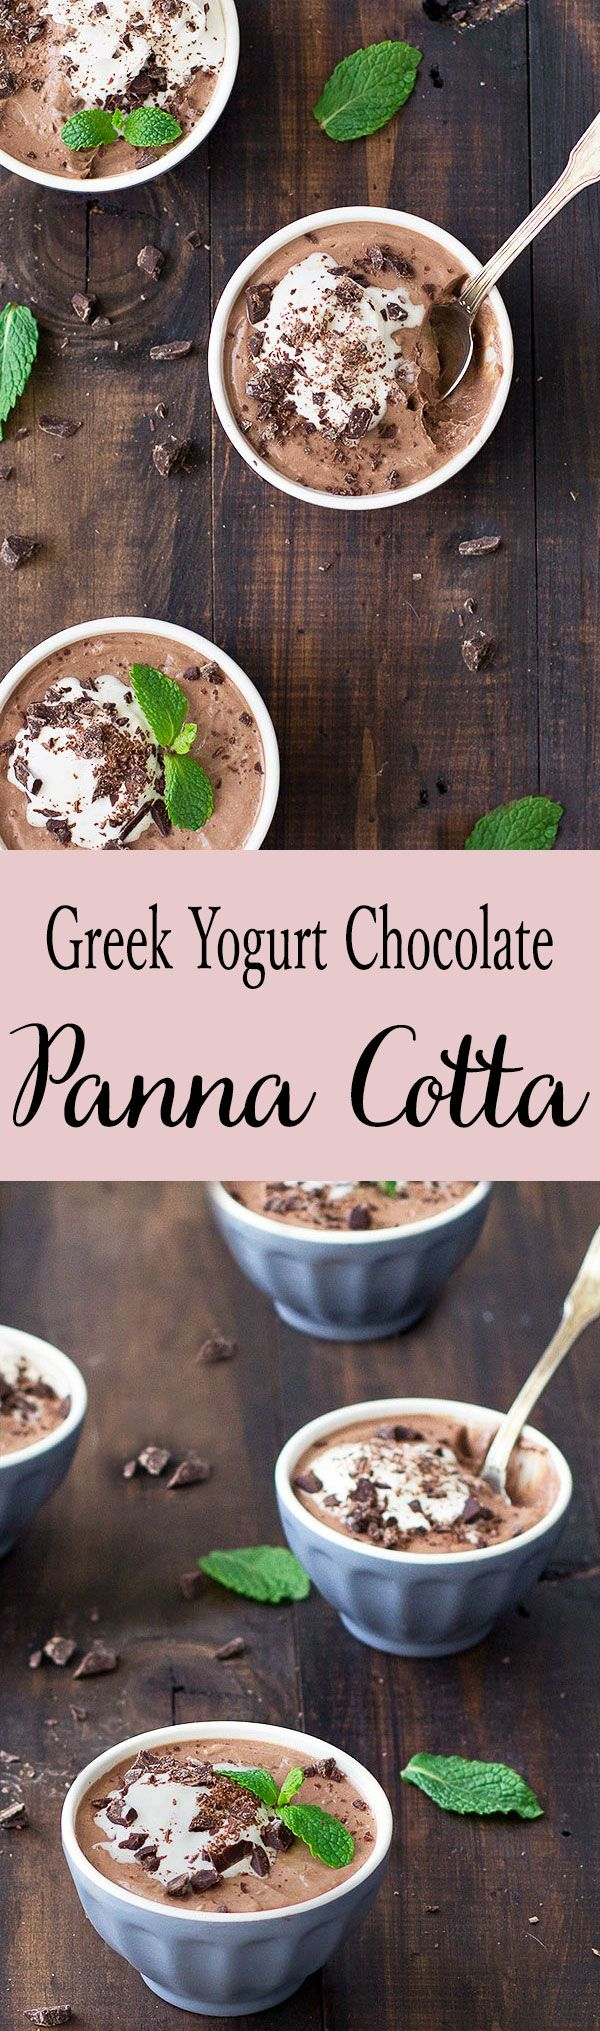 Greek yogurt chocolate panna cotta is silky smooth, rich and delicious! It's only about 205 calories per serving and packed with protein!